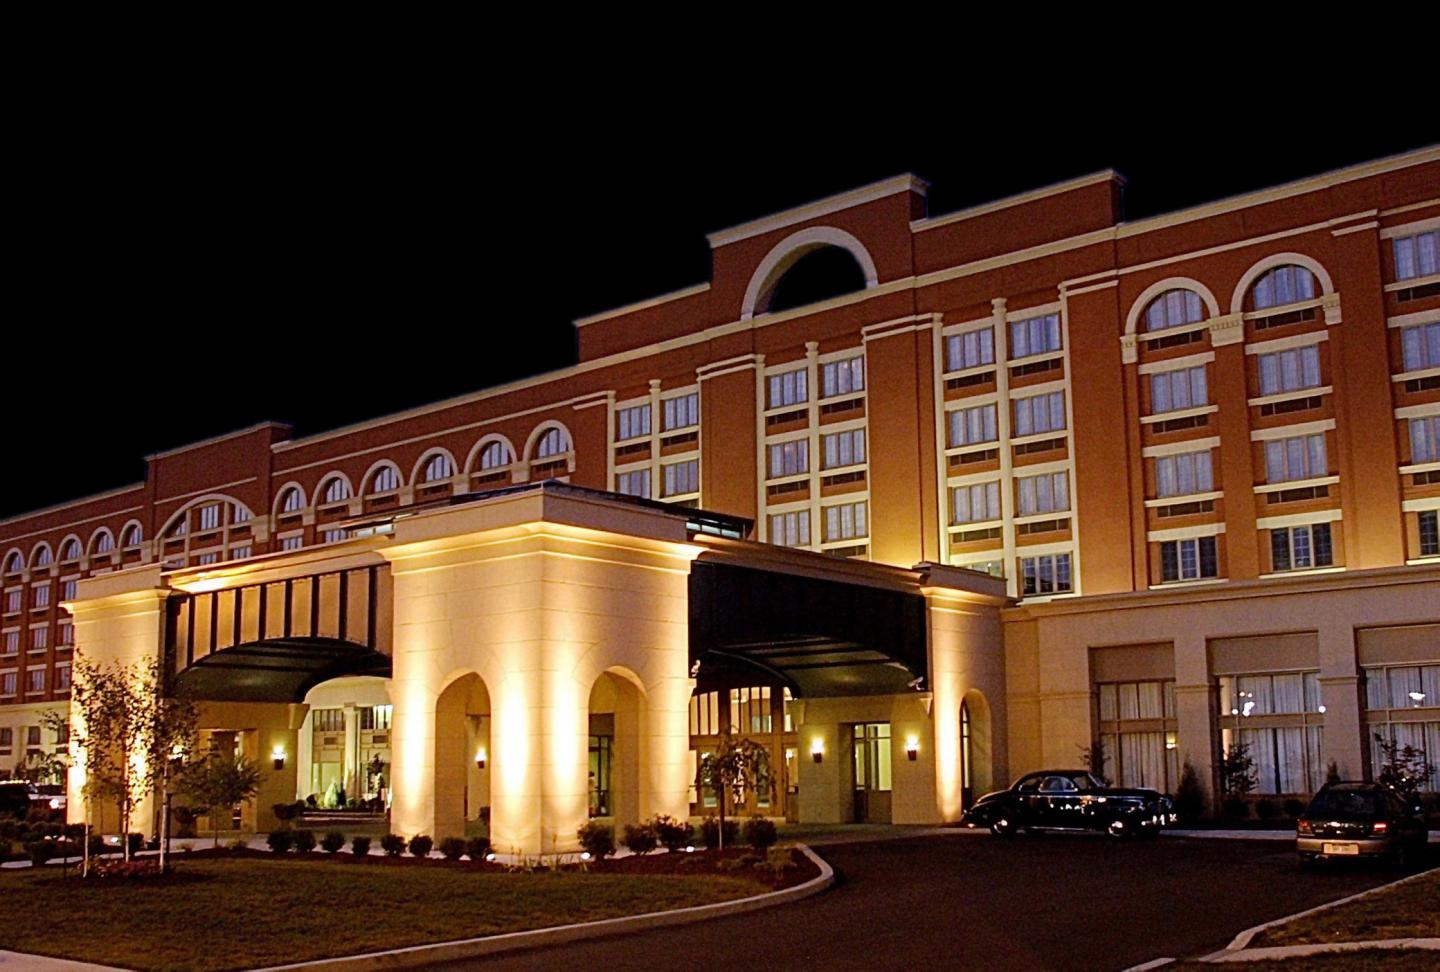 Property shot of Mountaineer Casino Racetrack & Resort